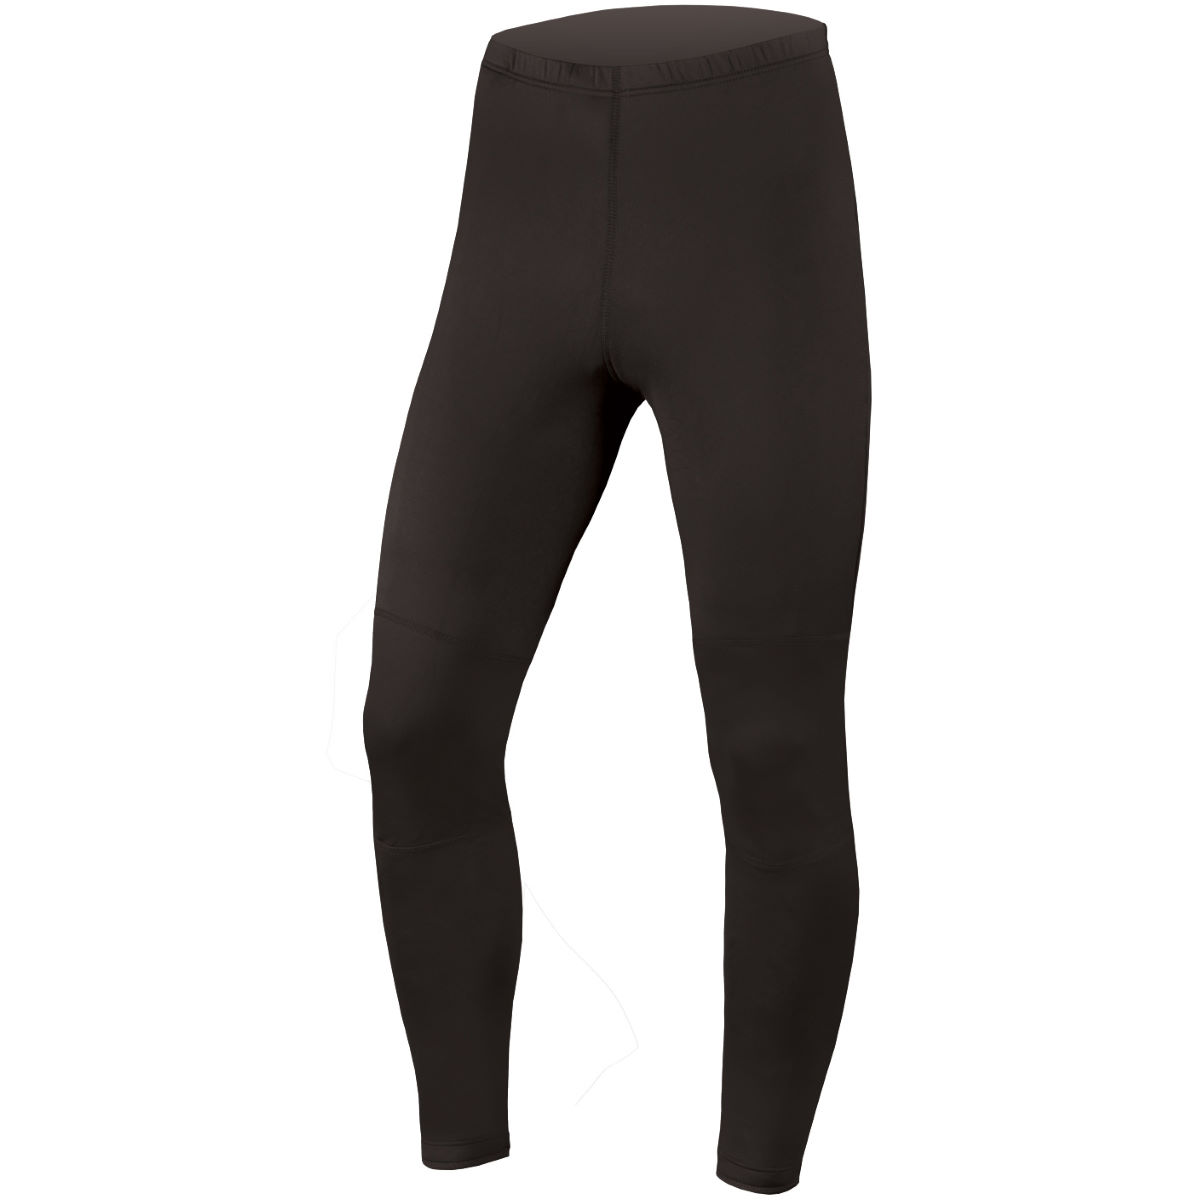 Cuissard long Endura Multi - L Noir  Collants